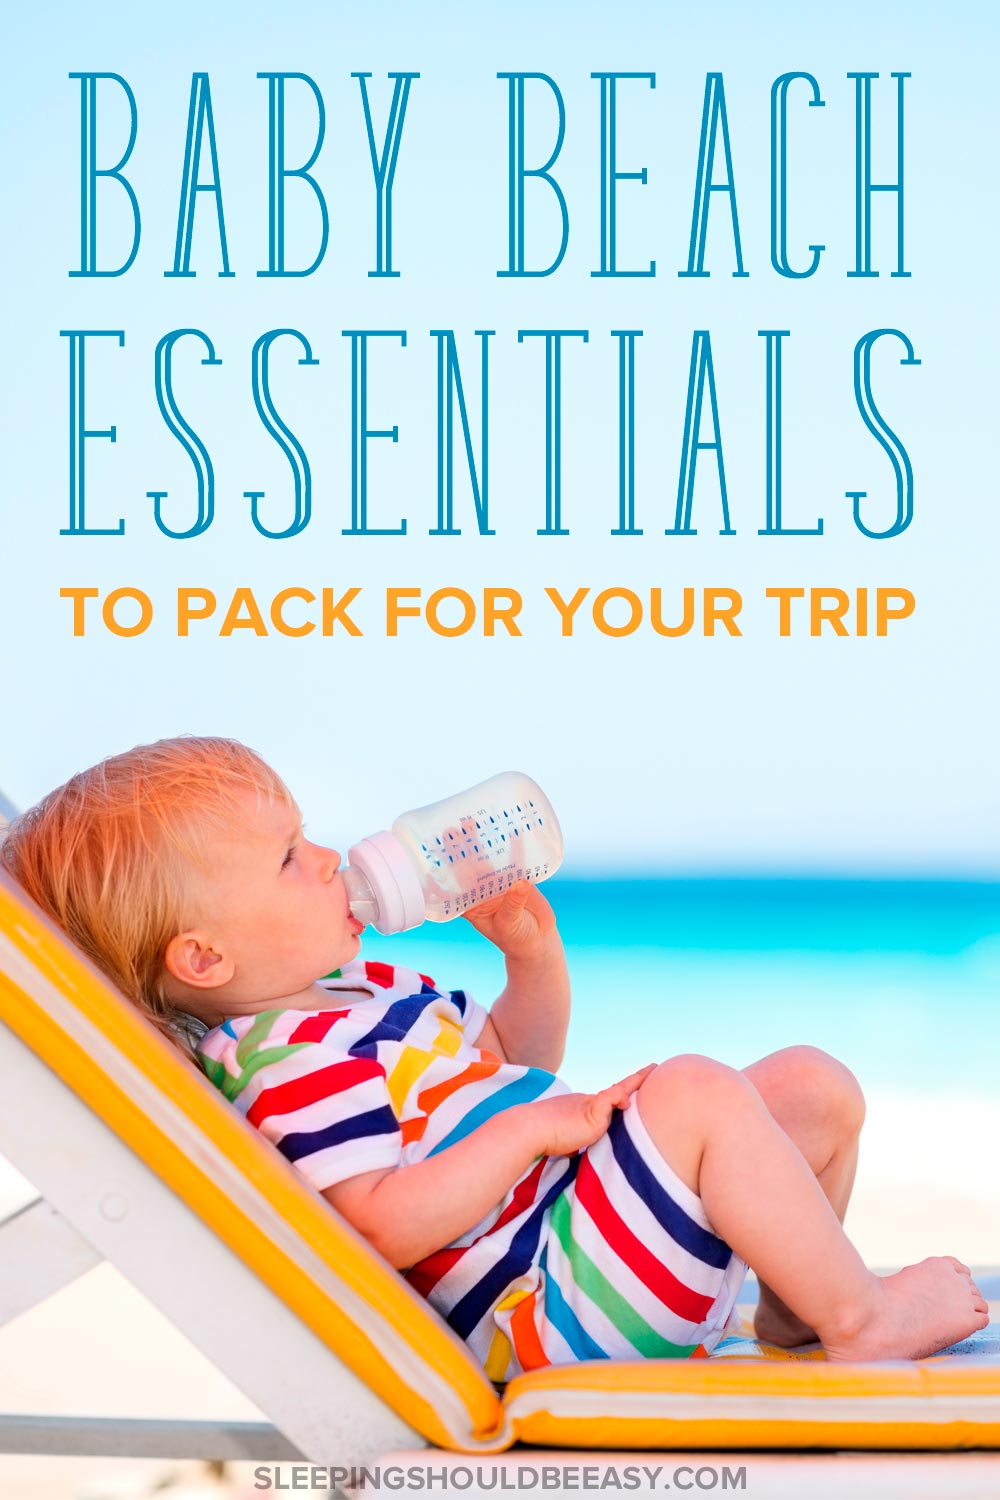 Taking a trip to the beach with the baby? Nothing's worse than forgetting an item. Discover the beach essentials for baby to take on your next trip.